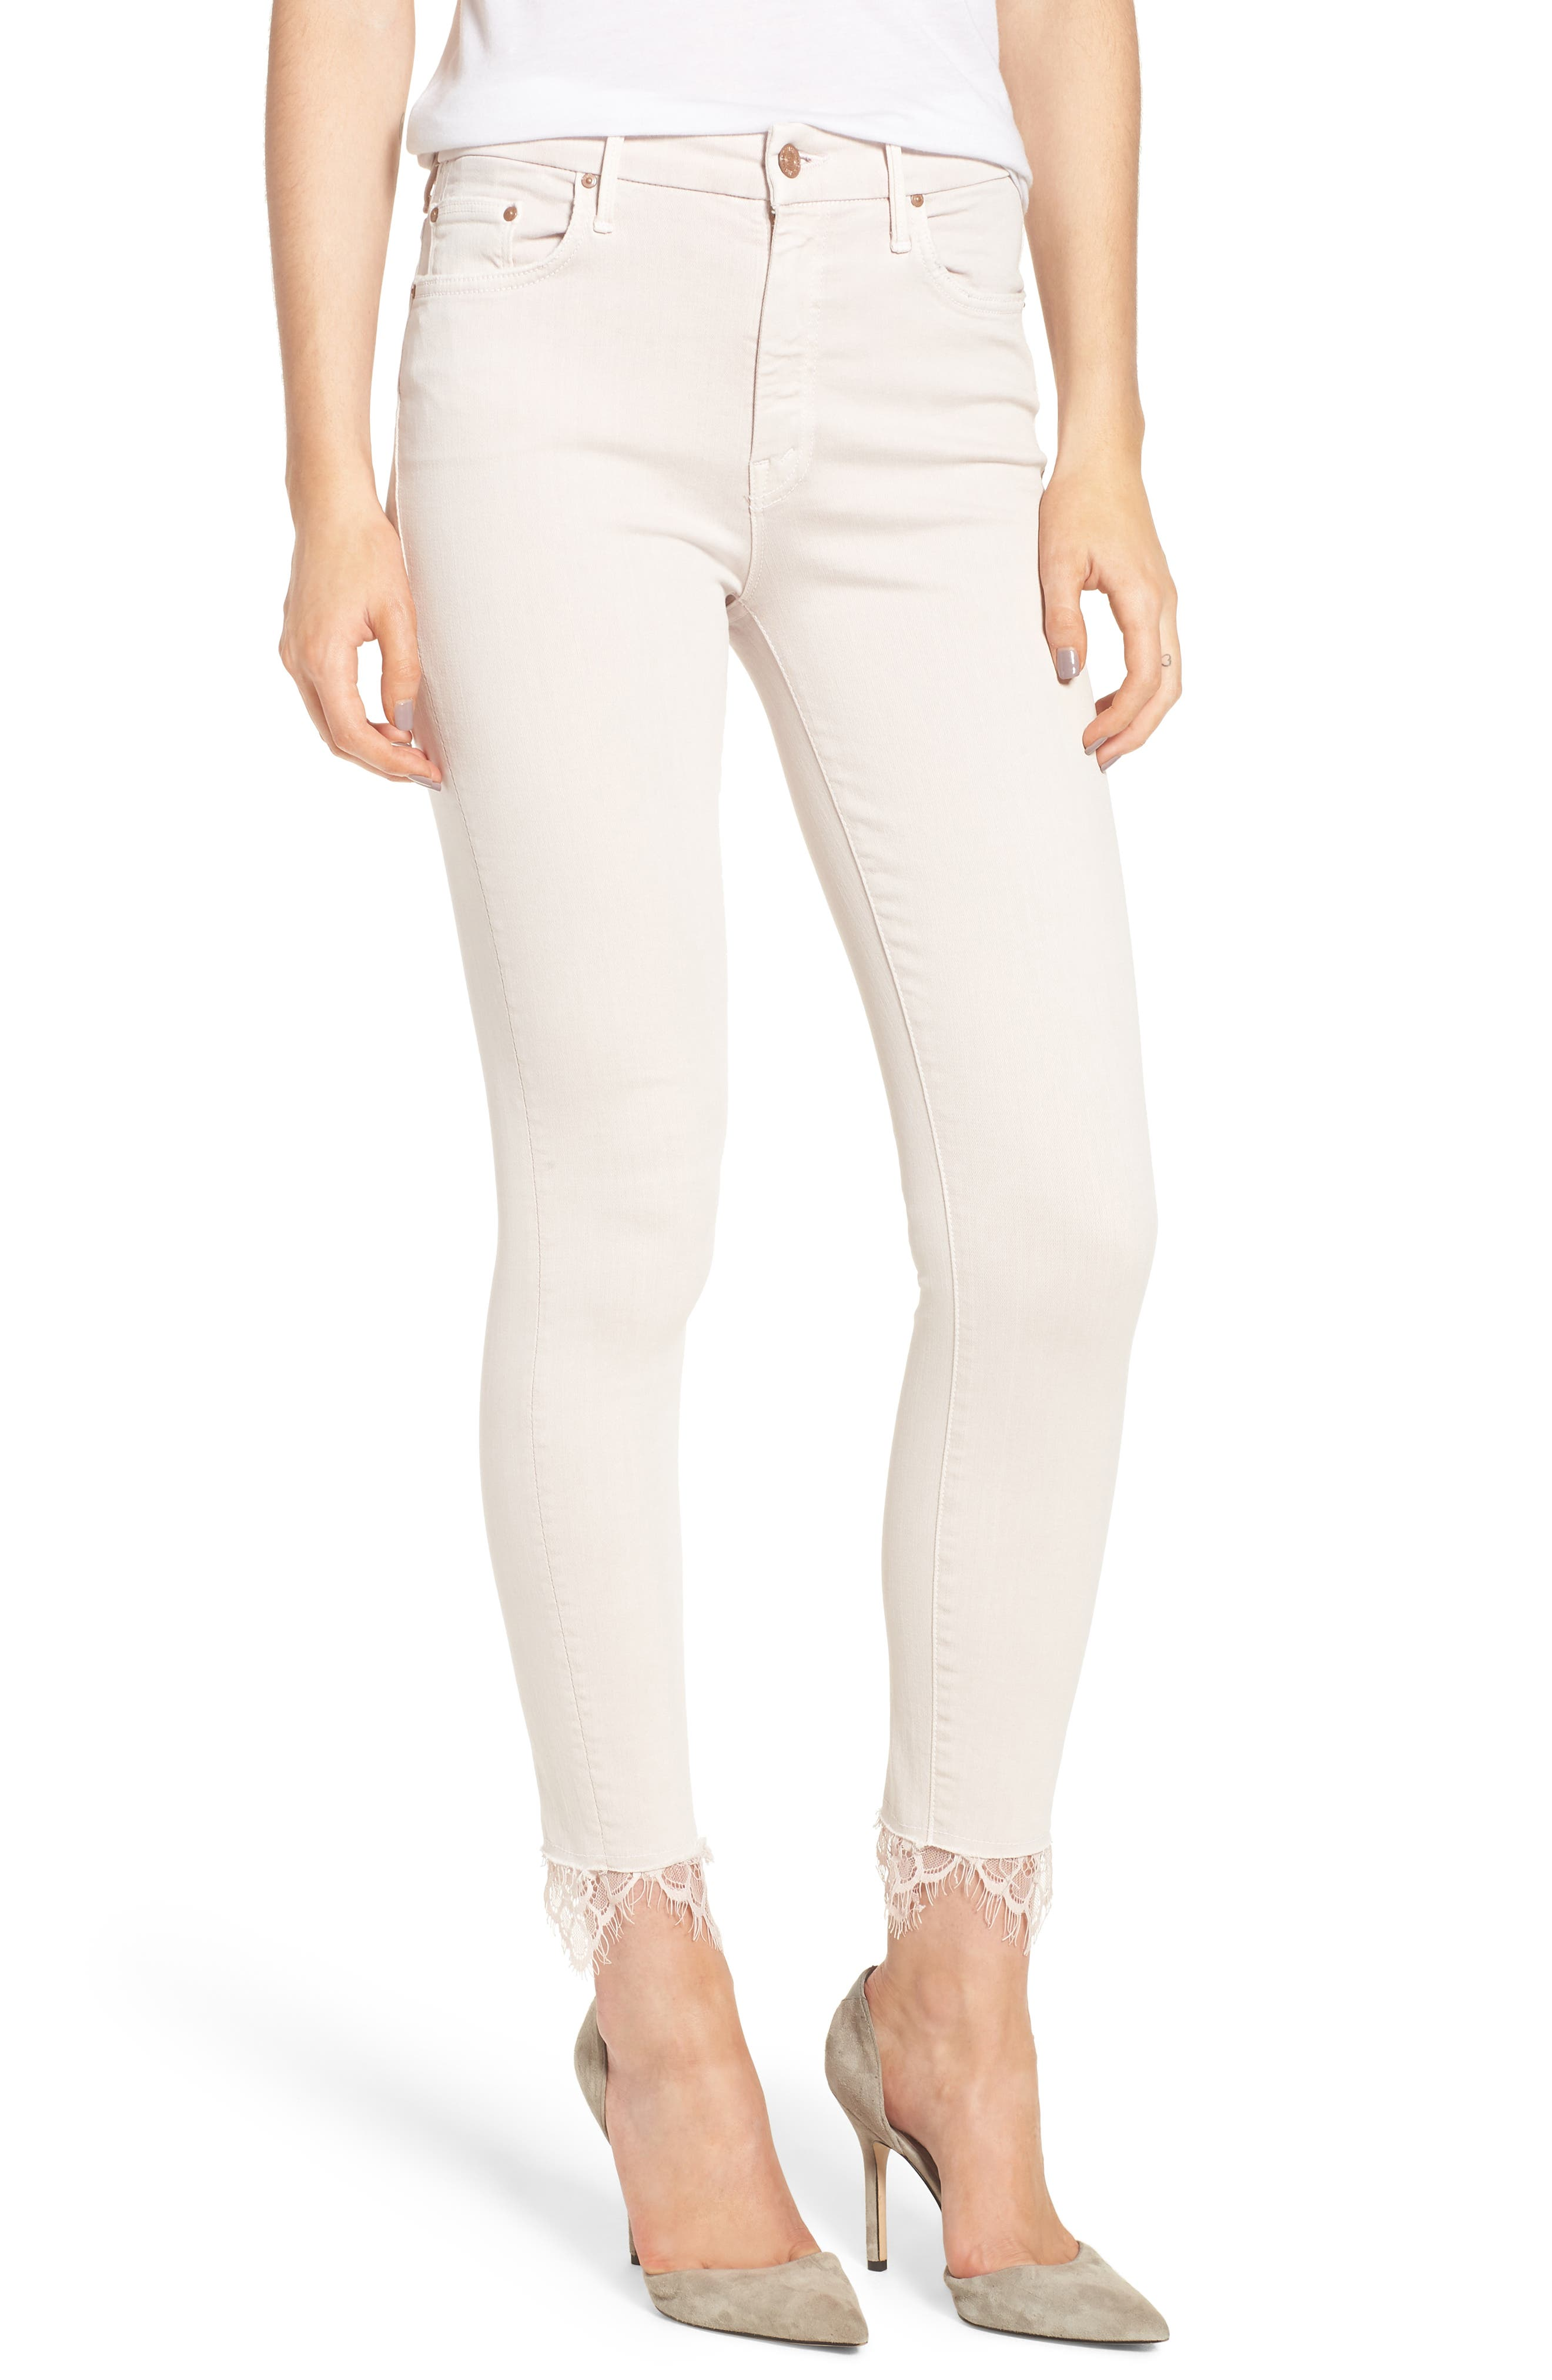 The Looker Dagger High Waist Ankle Skinny Jeans,                             Main thumbnail 1, color,                             Blush